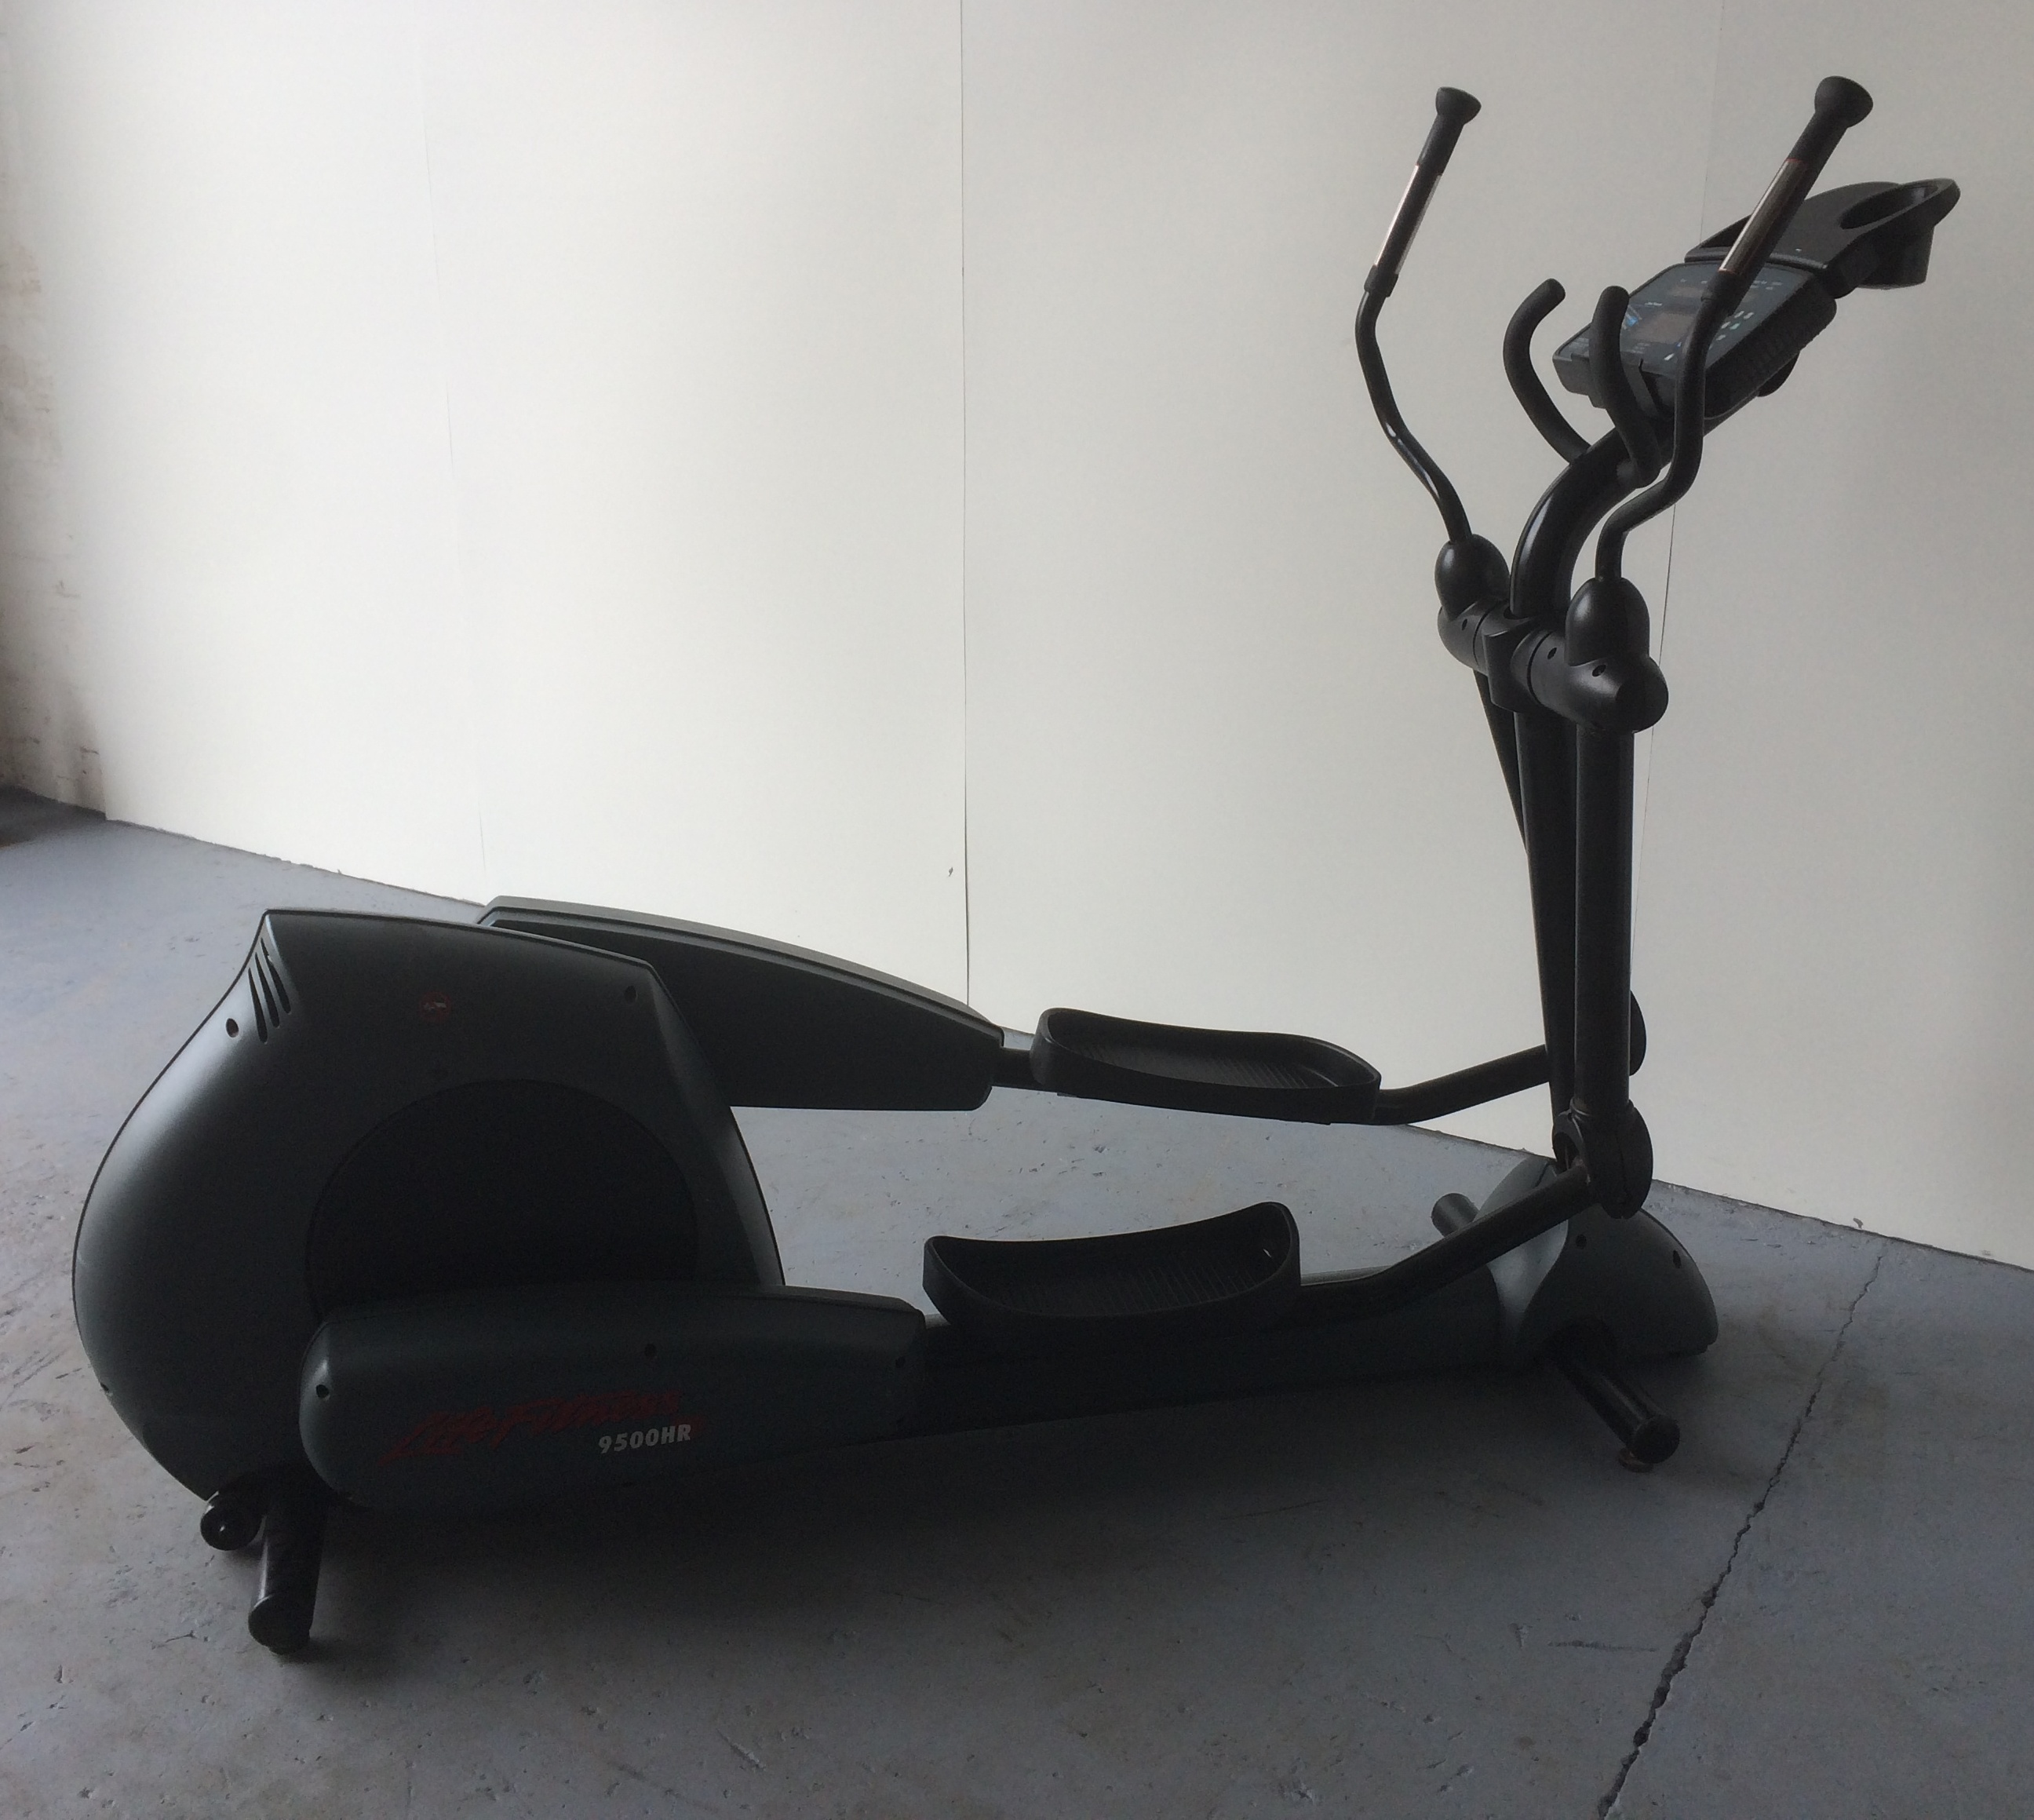 Photos of Cross Trainer Life Fitness 9500hr